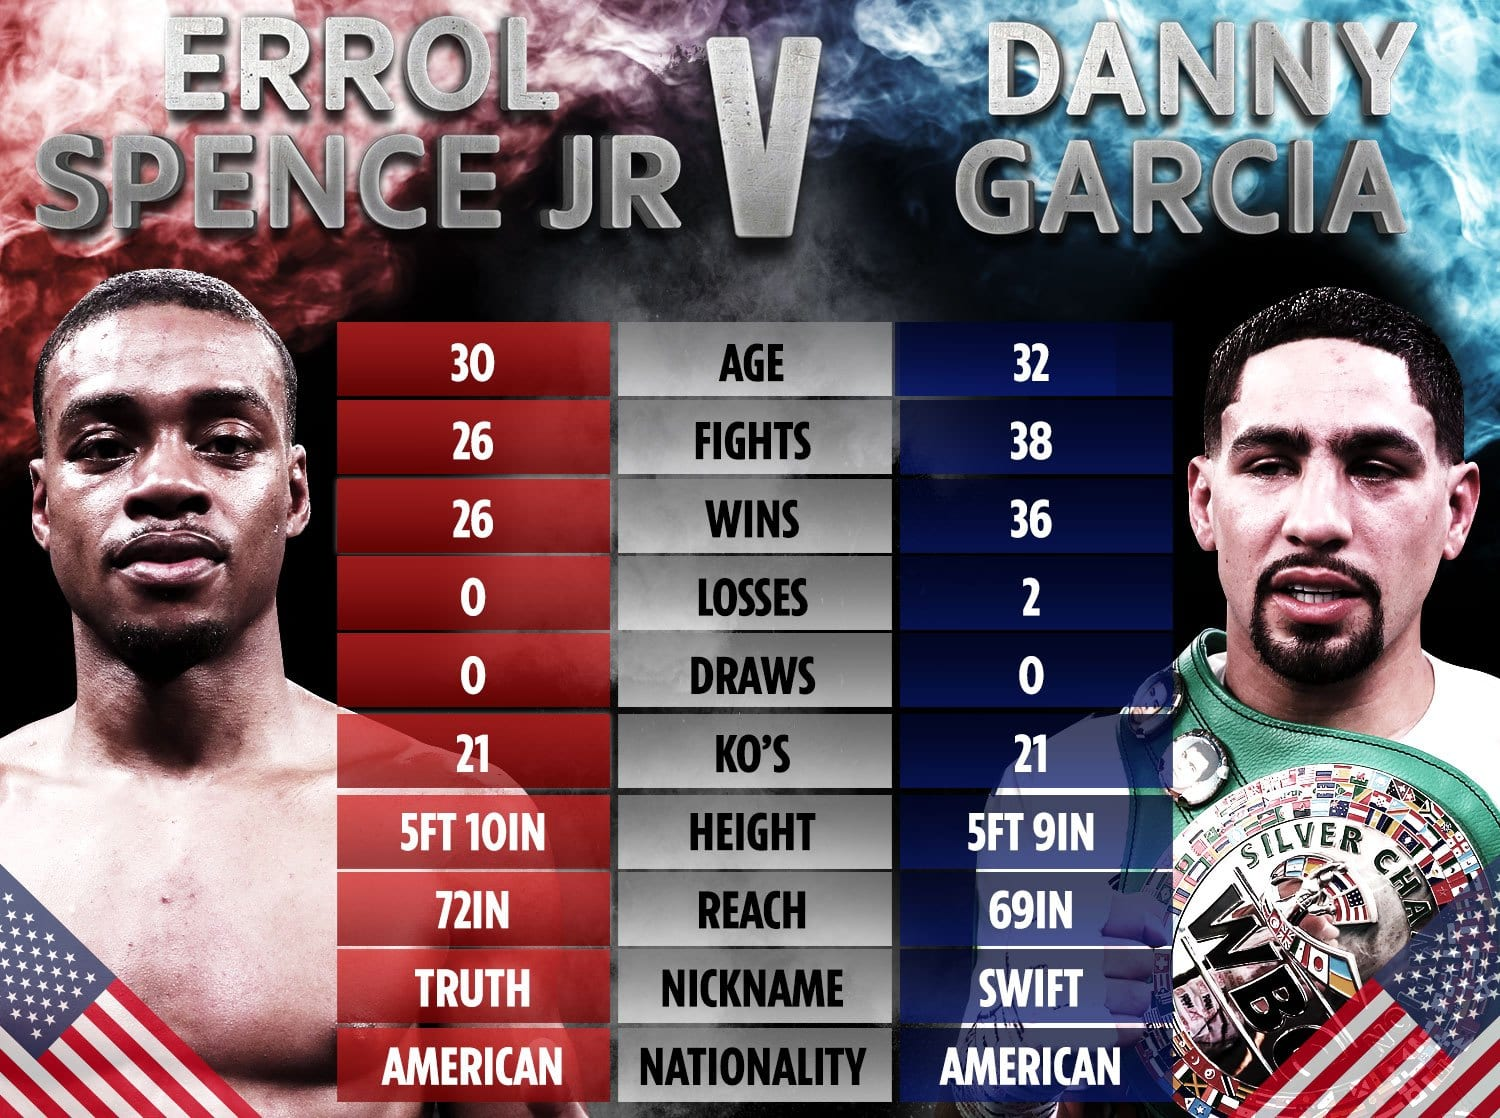 Fight Night Boxing – Spence Jr vs Garcia live n SuperSport this weekend